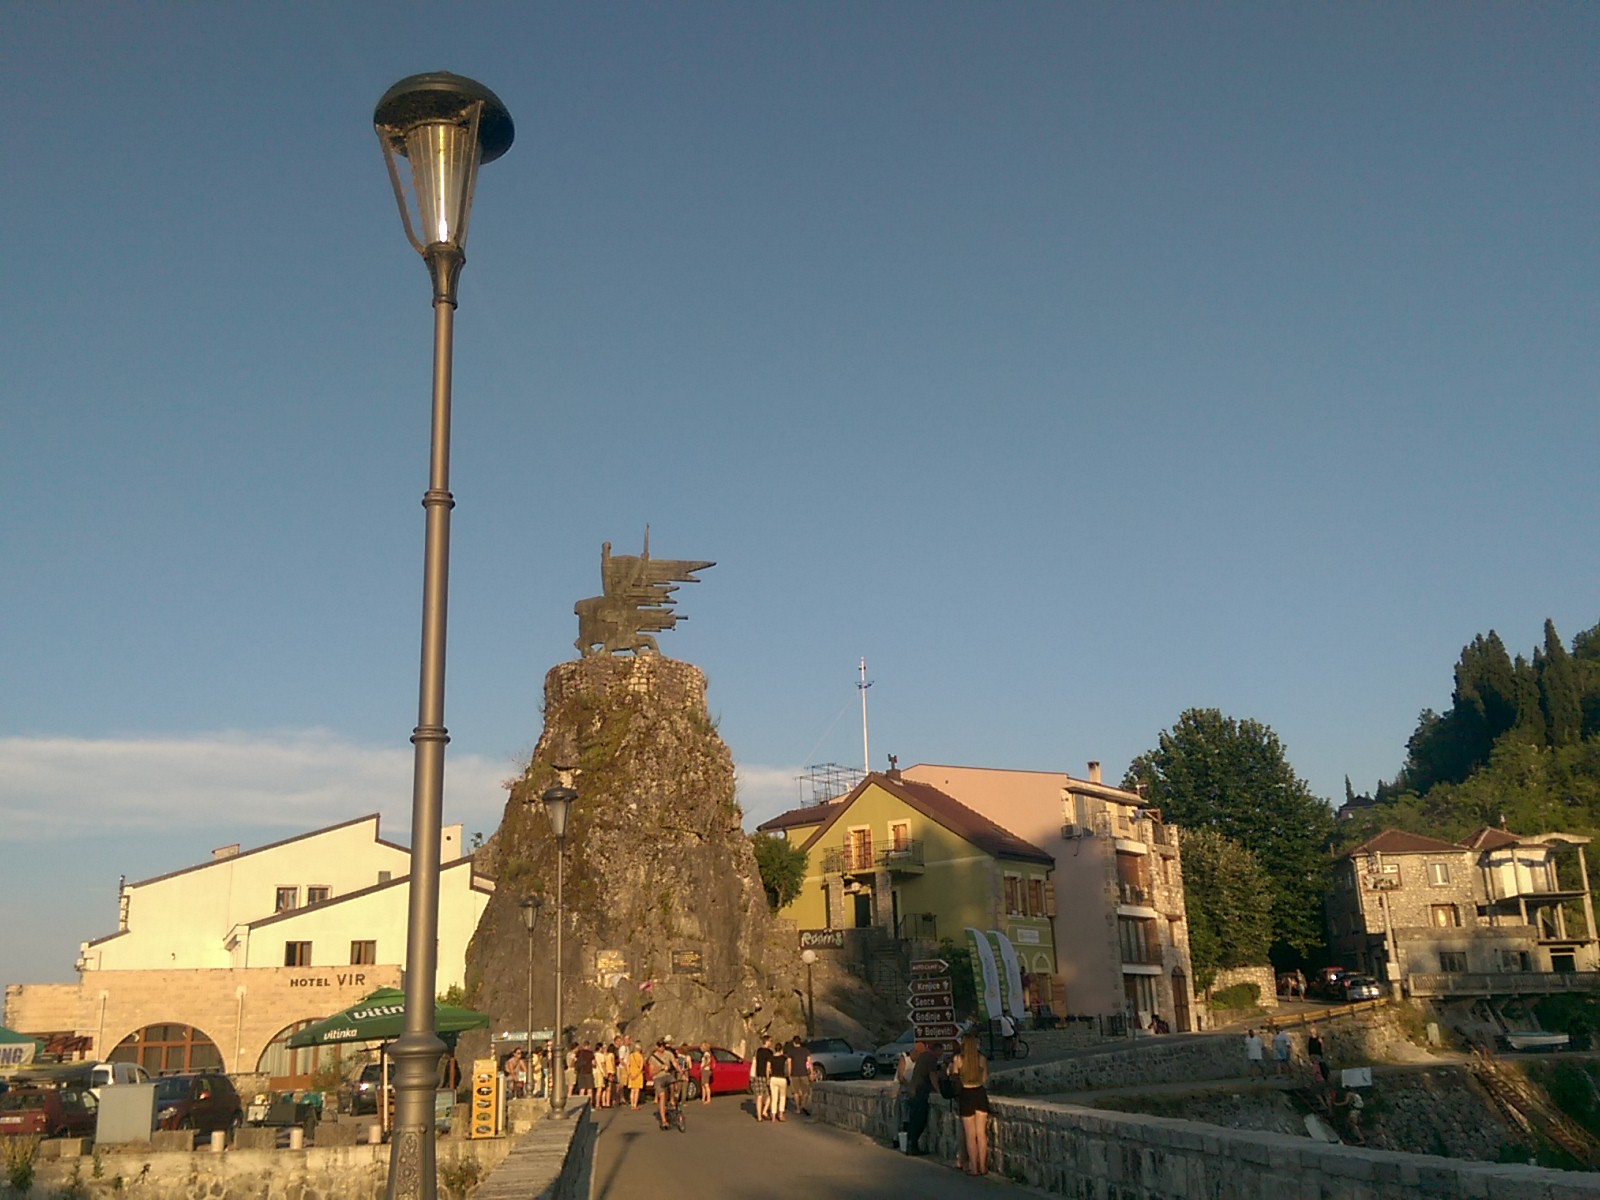 A small town with an abstract statue on a rock in the middle